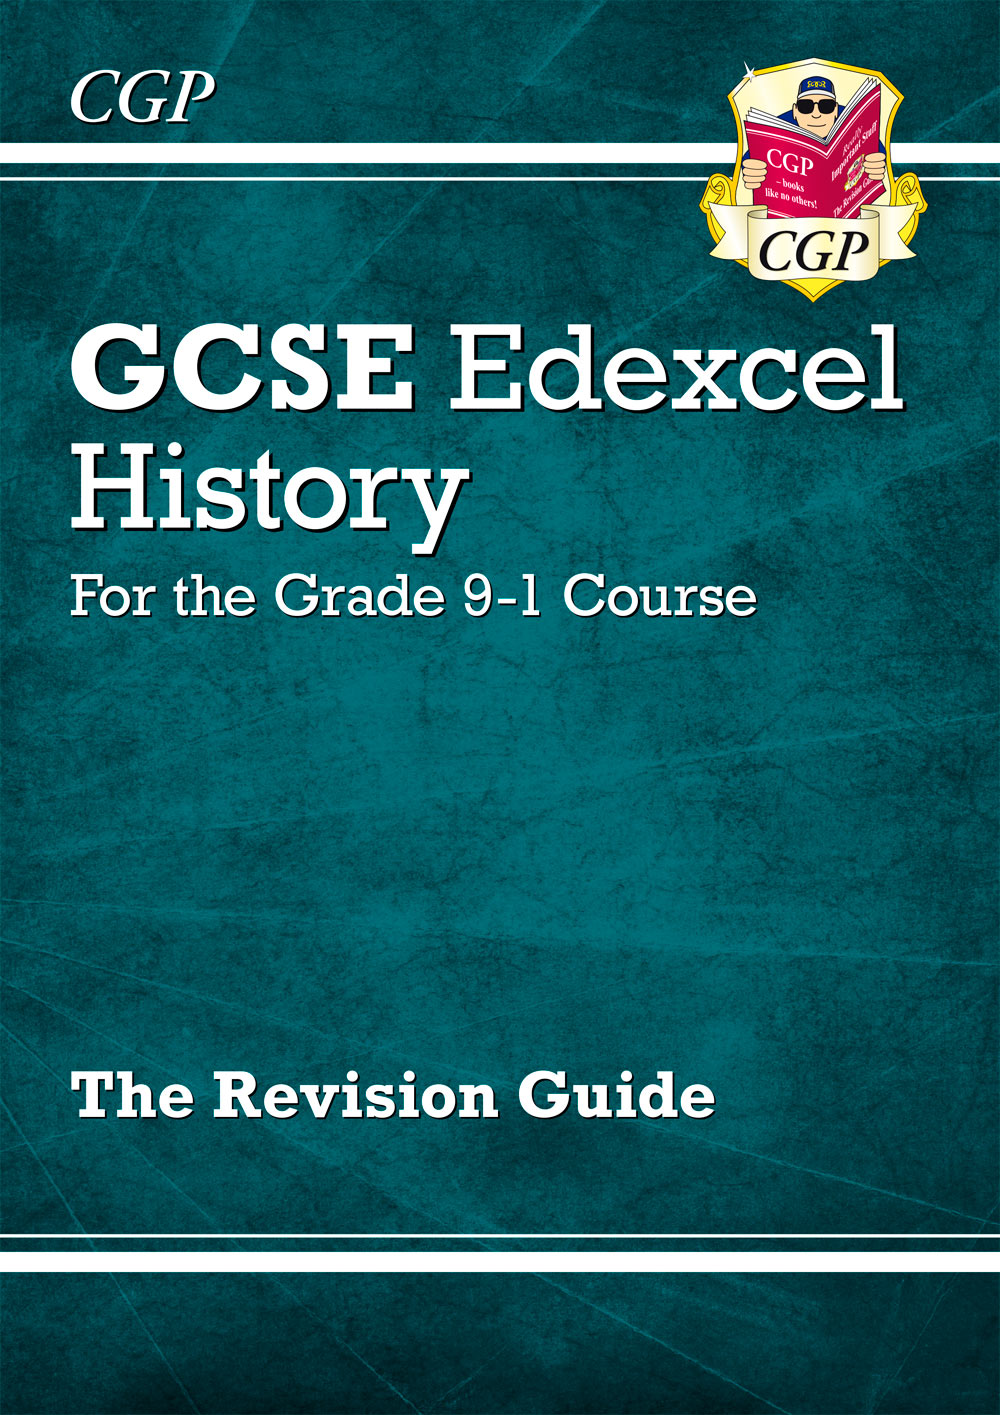 HER41 - New GCSE History Edexcel Revision Guide - for the Grade 9-1 Course